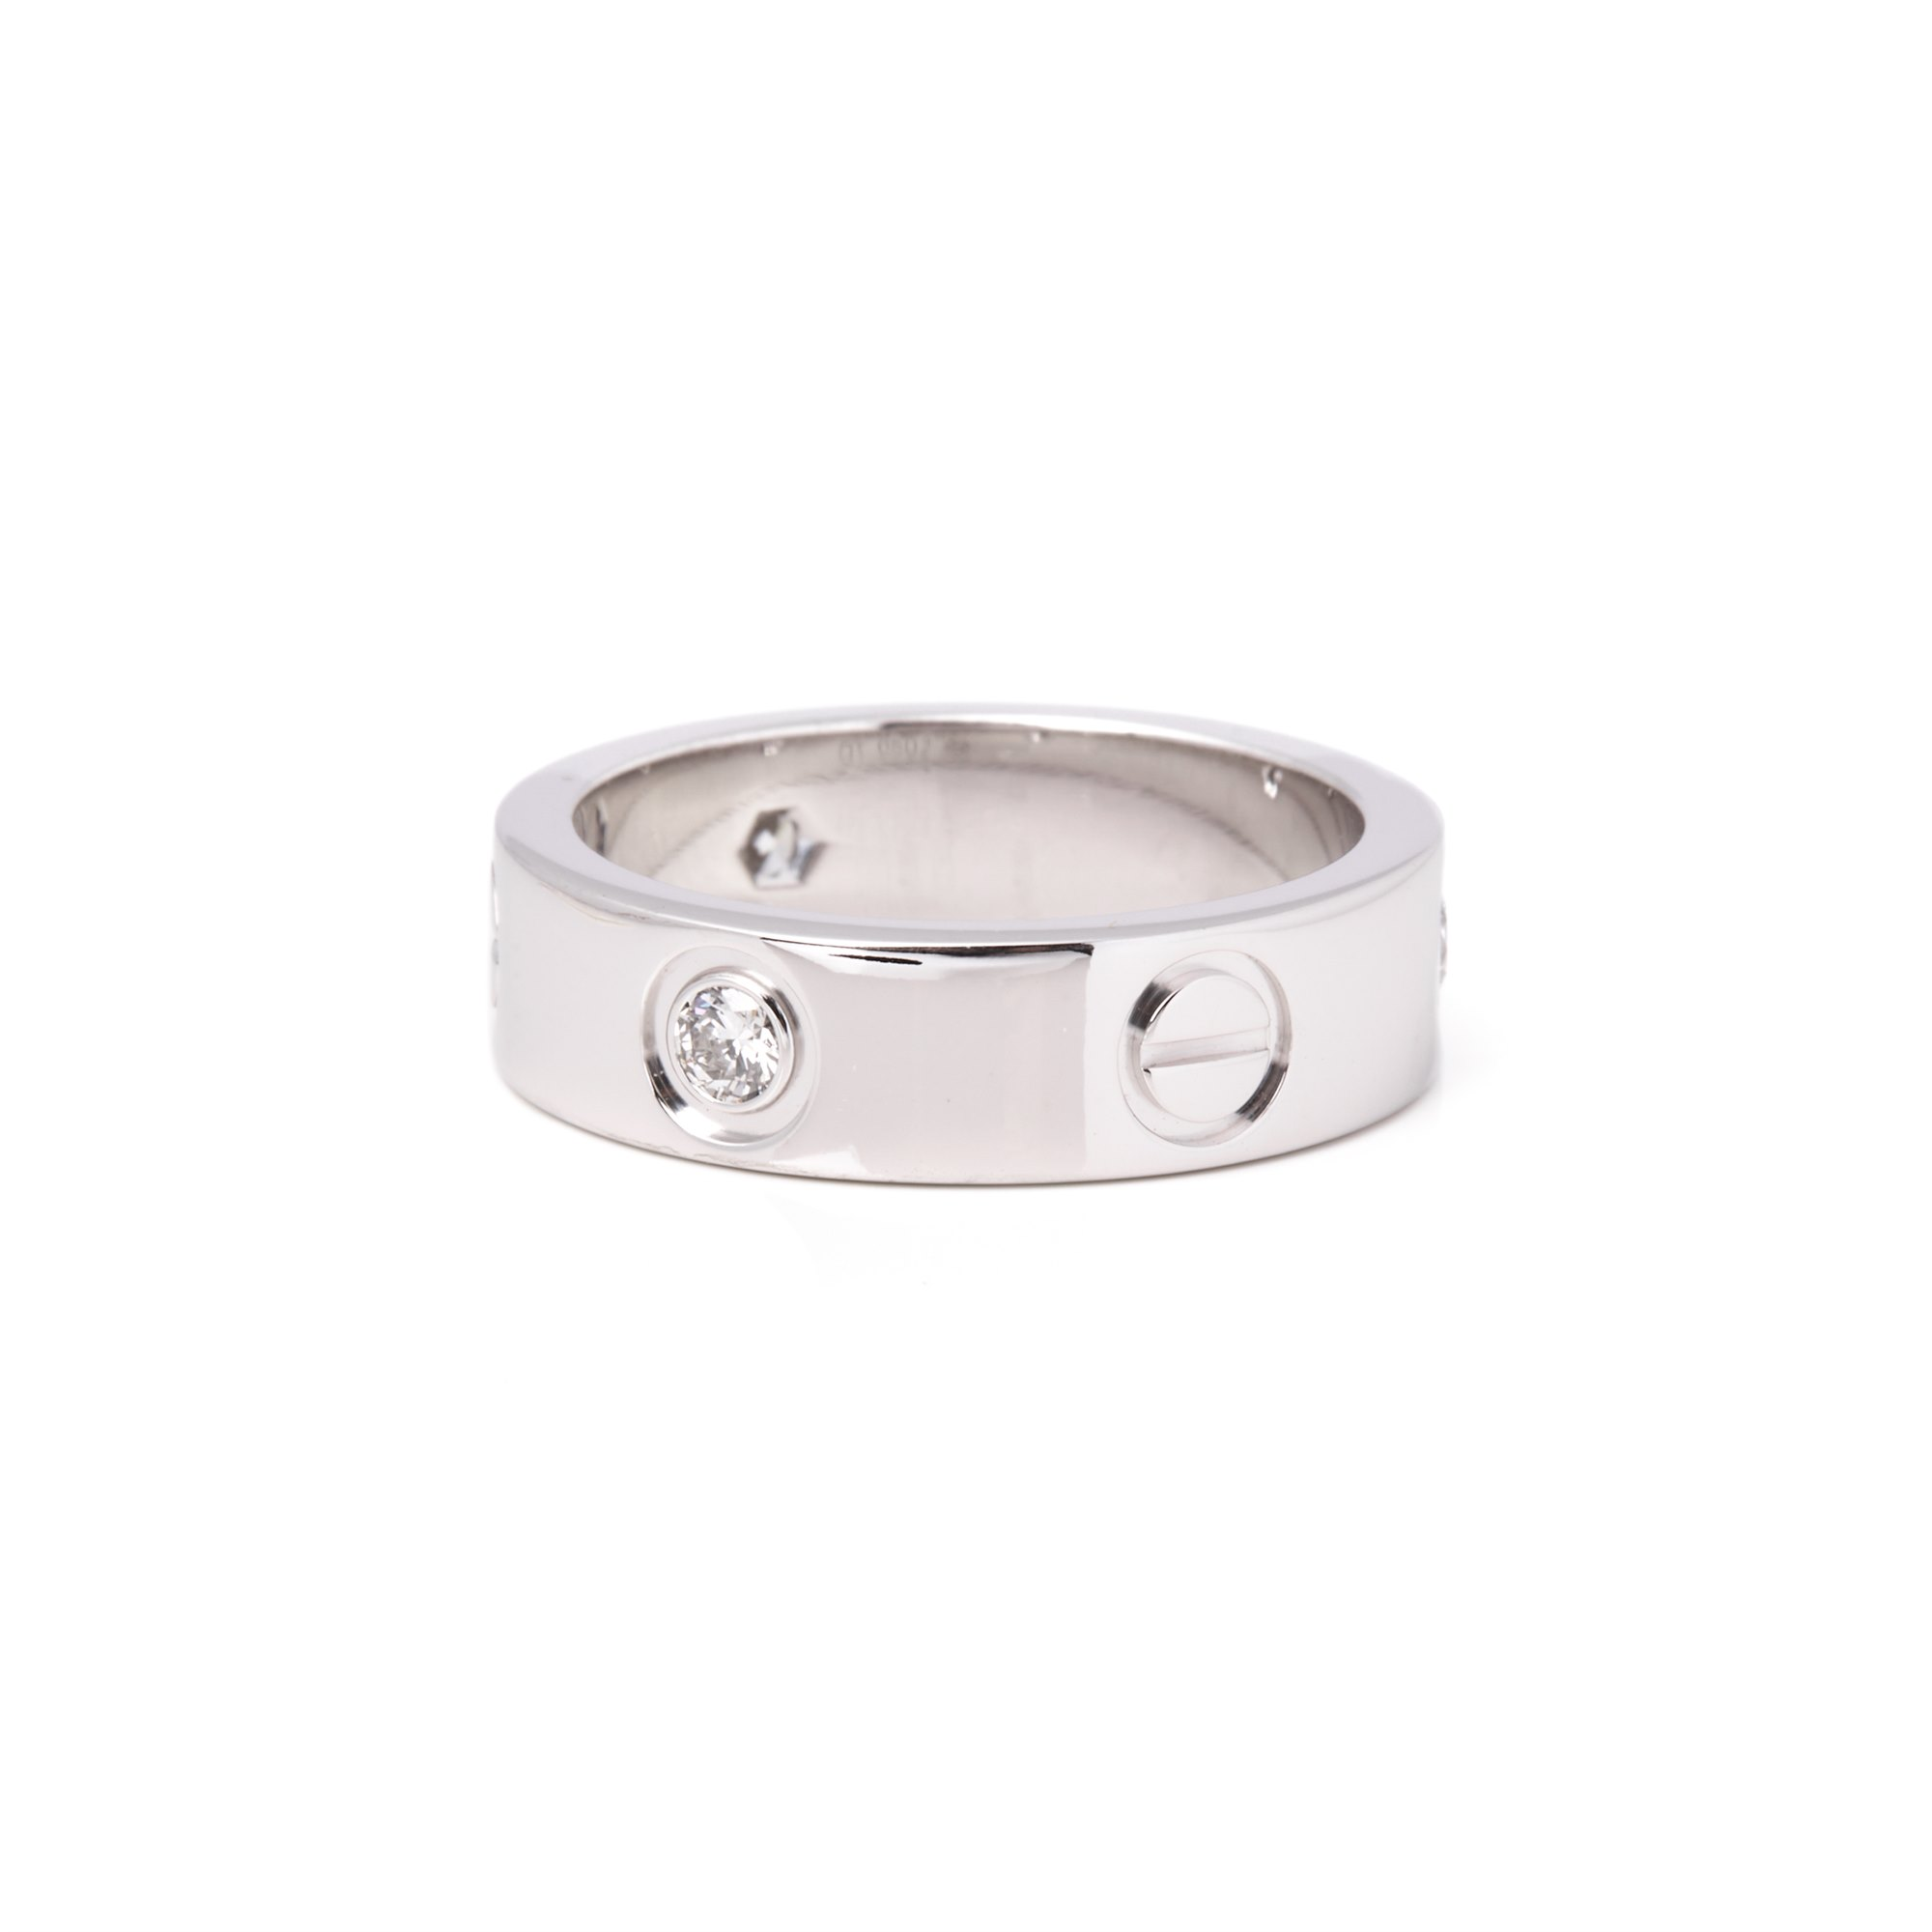 Cartier Love 18ct White Gold 3 Diamond Ring